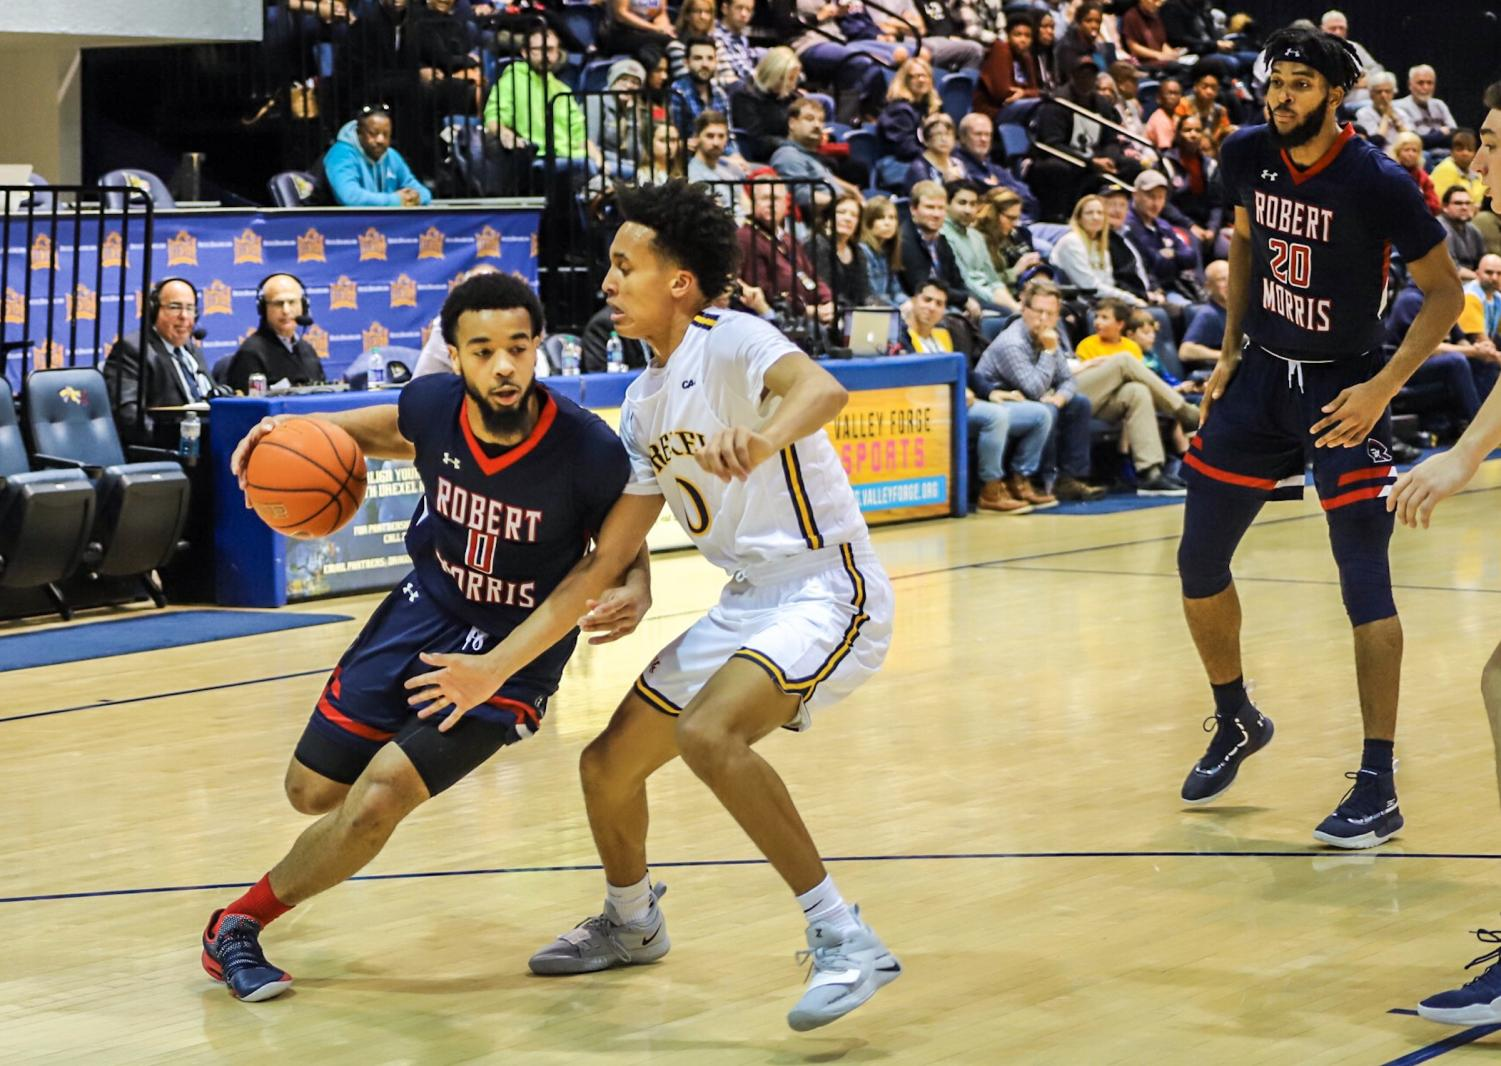 PHILADELPHIA - Josh Williams drives to the hoop against Drexel on 12/01/18. (Photo Credit: David Auth/RMU Sentry Media) Photo credit: David Auth